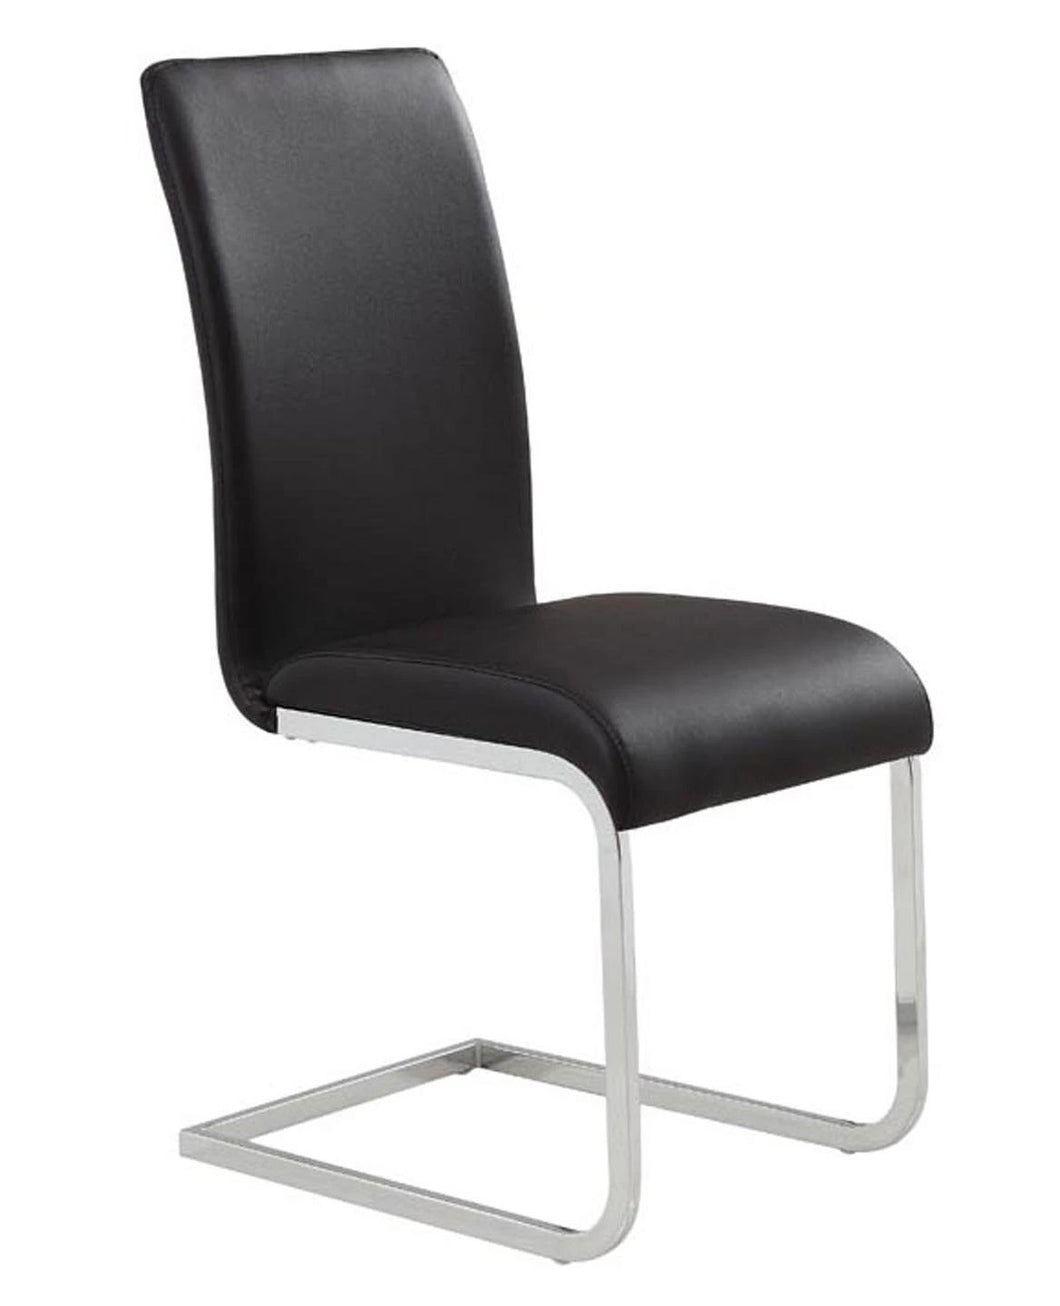 Maxim Side Chair in Black